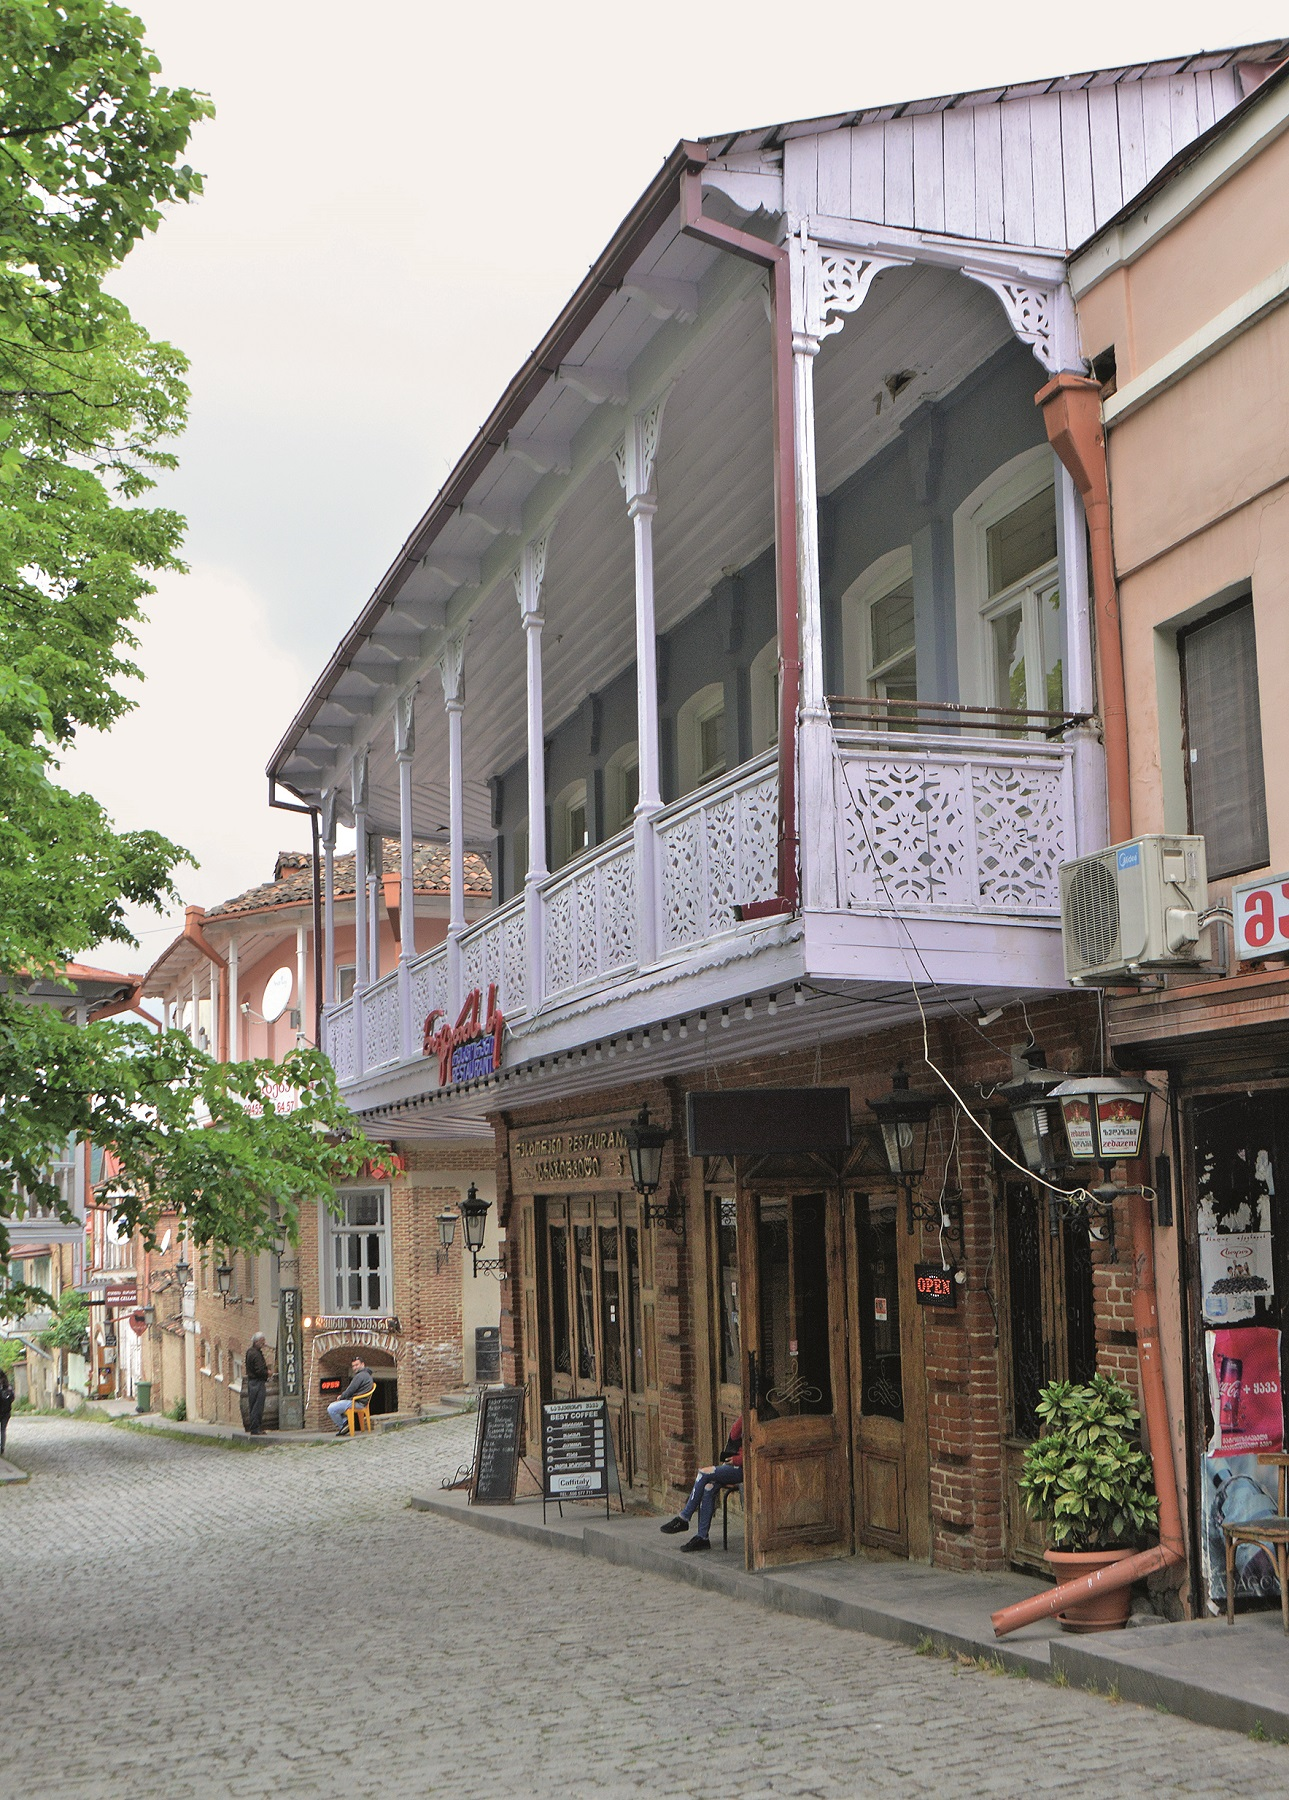 Old house with a big wooden balcony in the mostly renovated historical old town Sighnaghi (Signagi) in Georgia (Kakheti), recorded on 21.05.2019 | usage worldwide